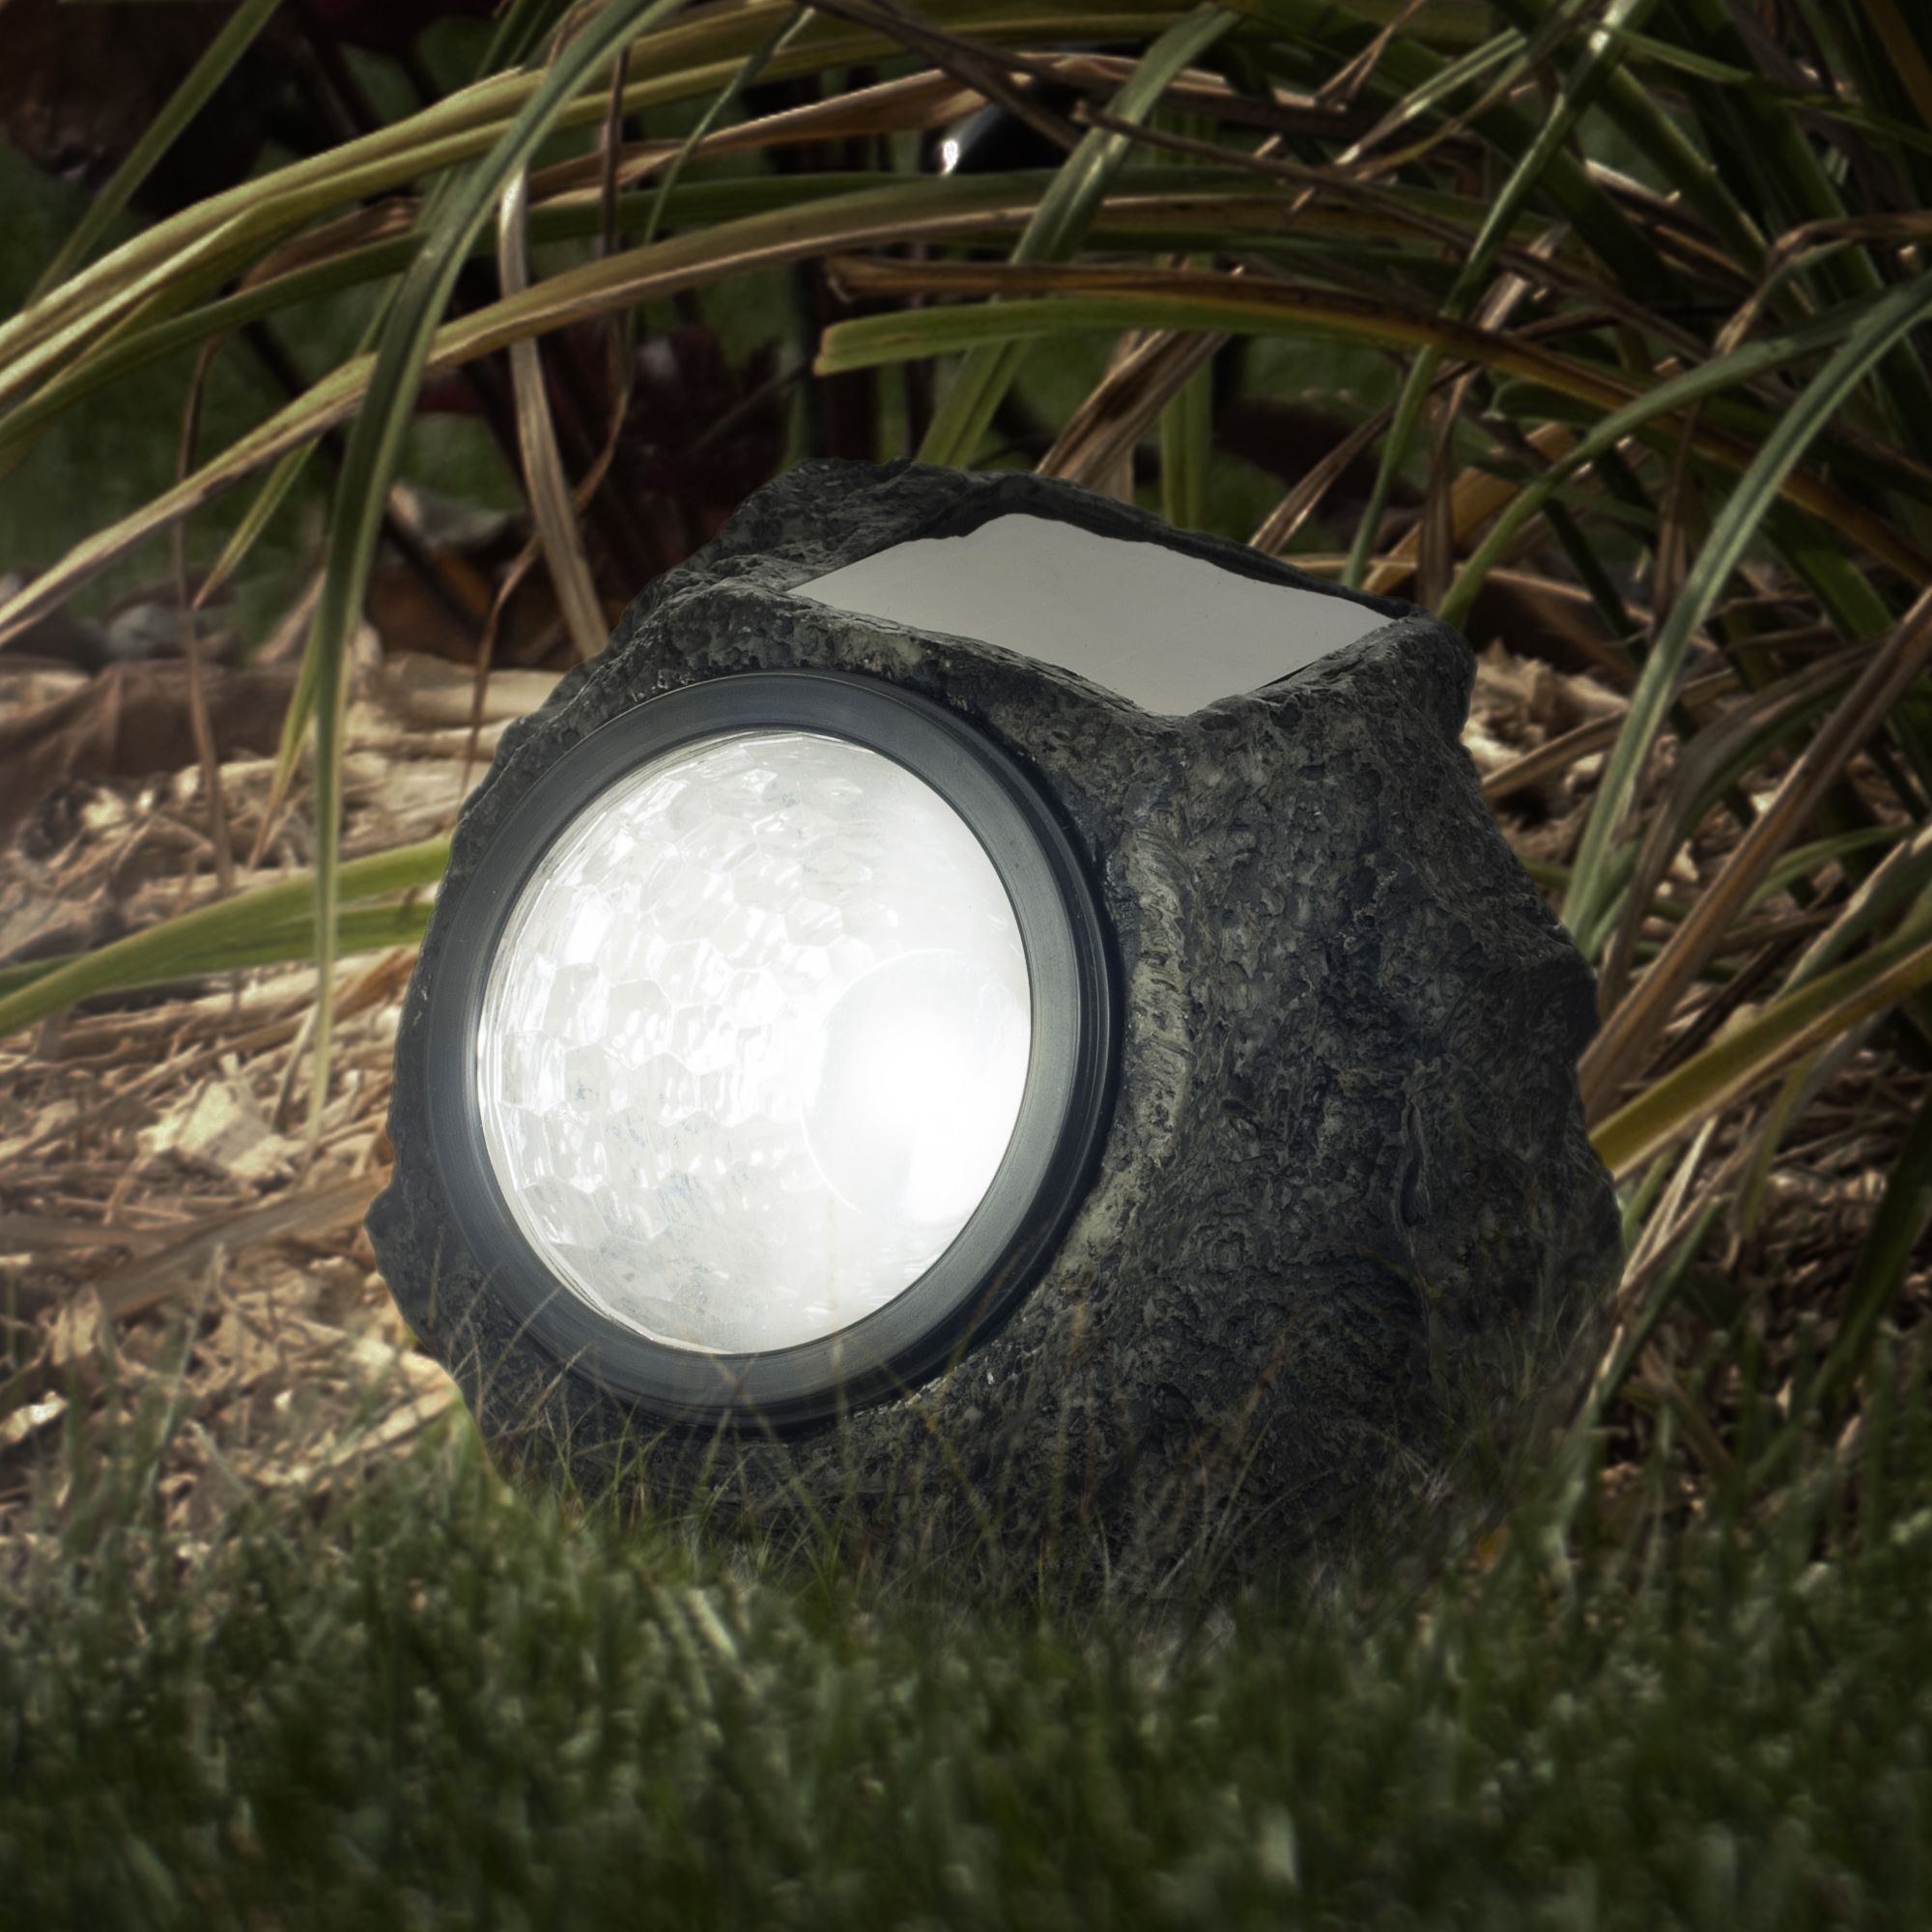 LED Solar Rock Landscaping Lights - Set of 4 by Pure Garden